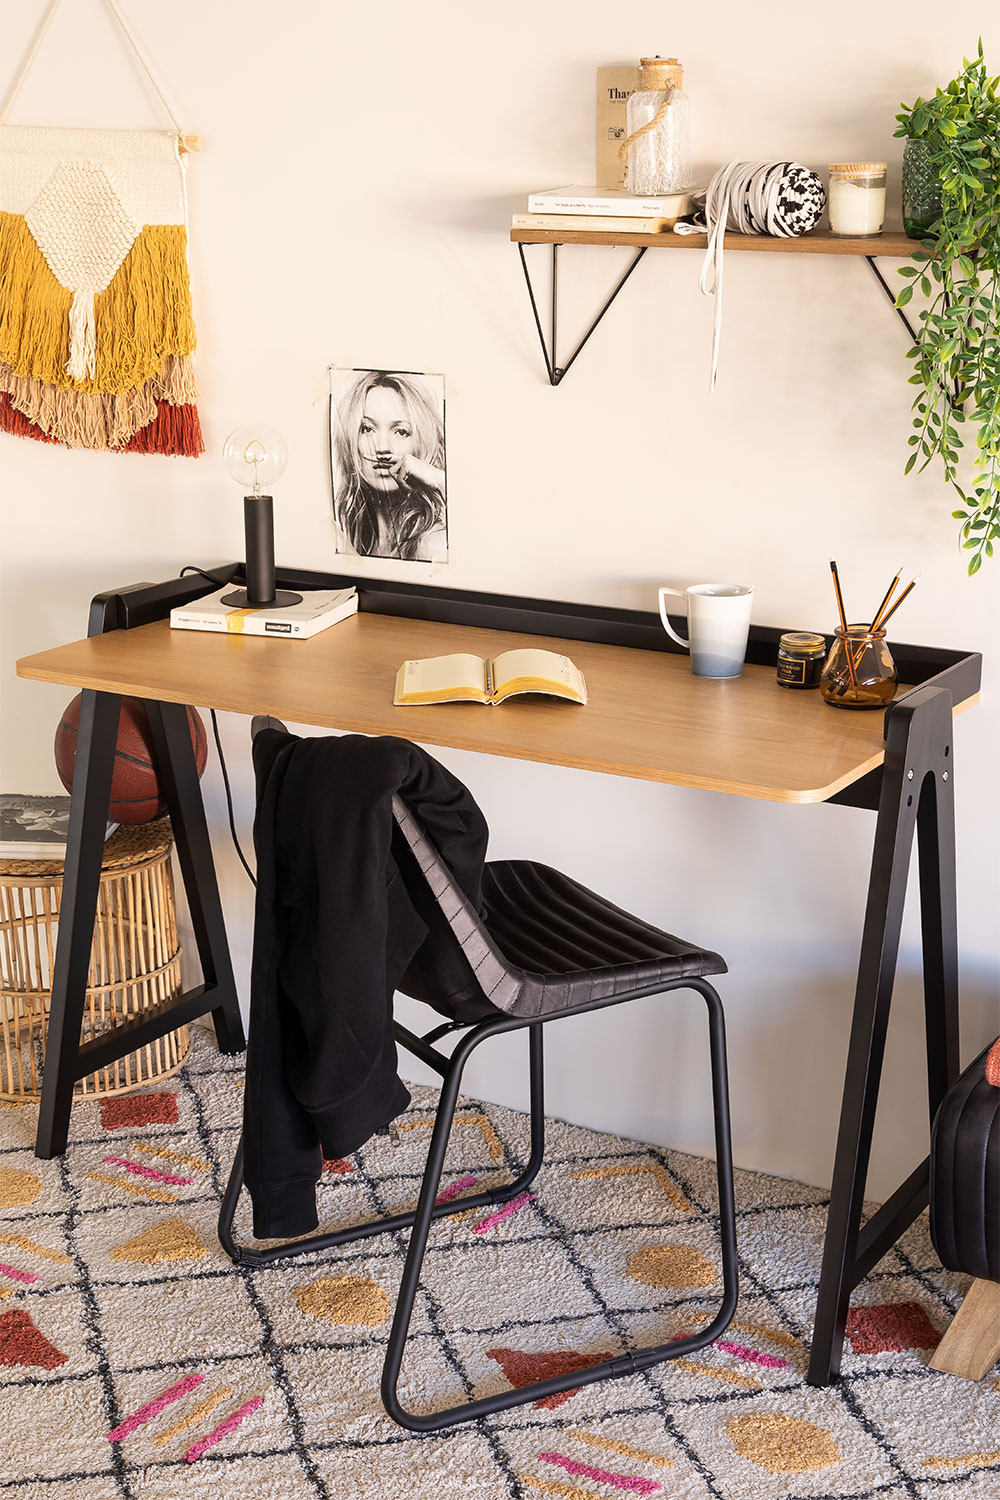 Wooden Desk Kailo, gallery image 1